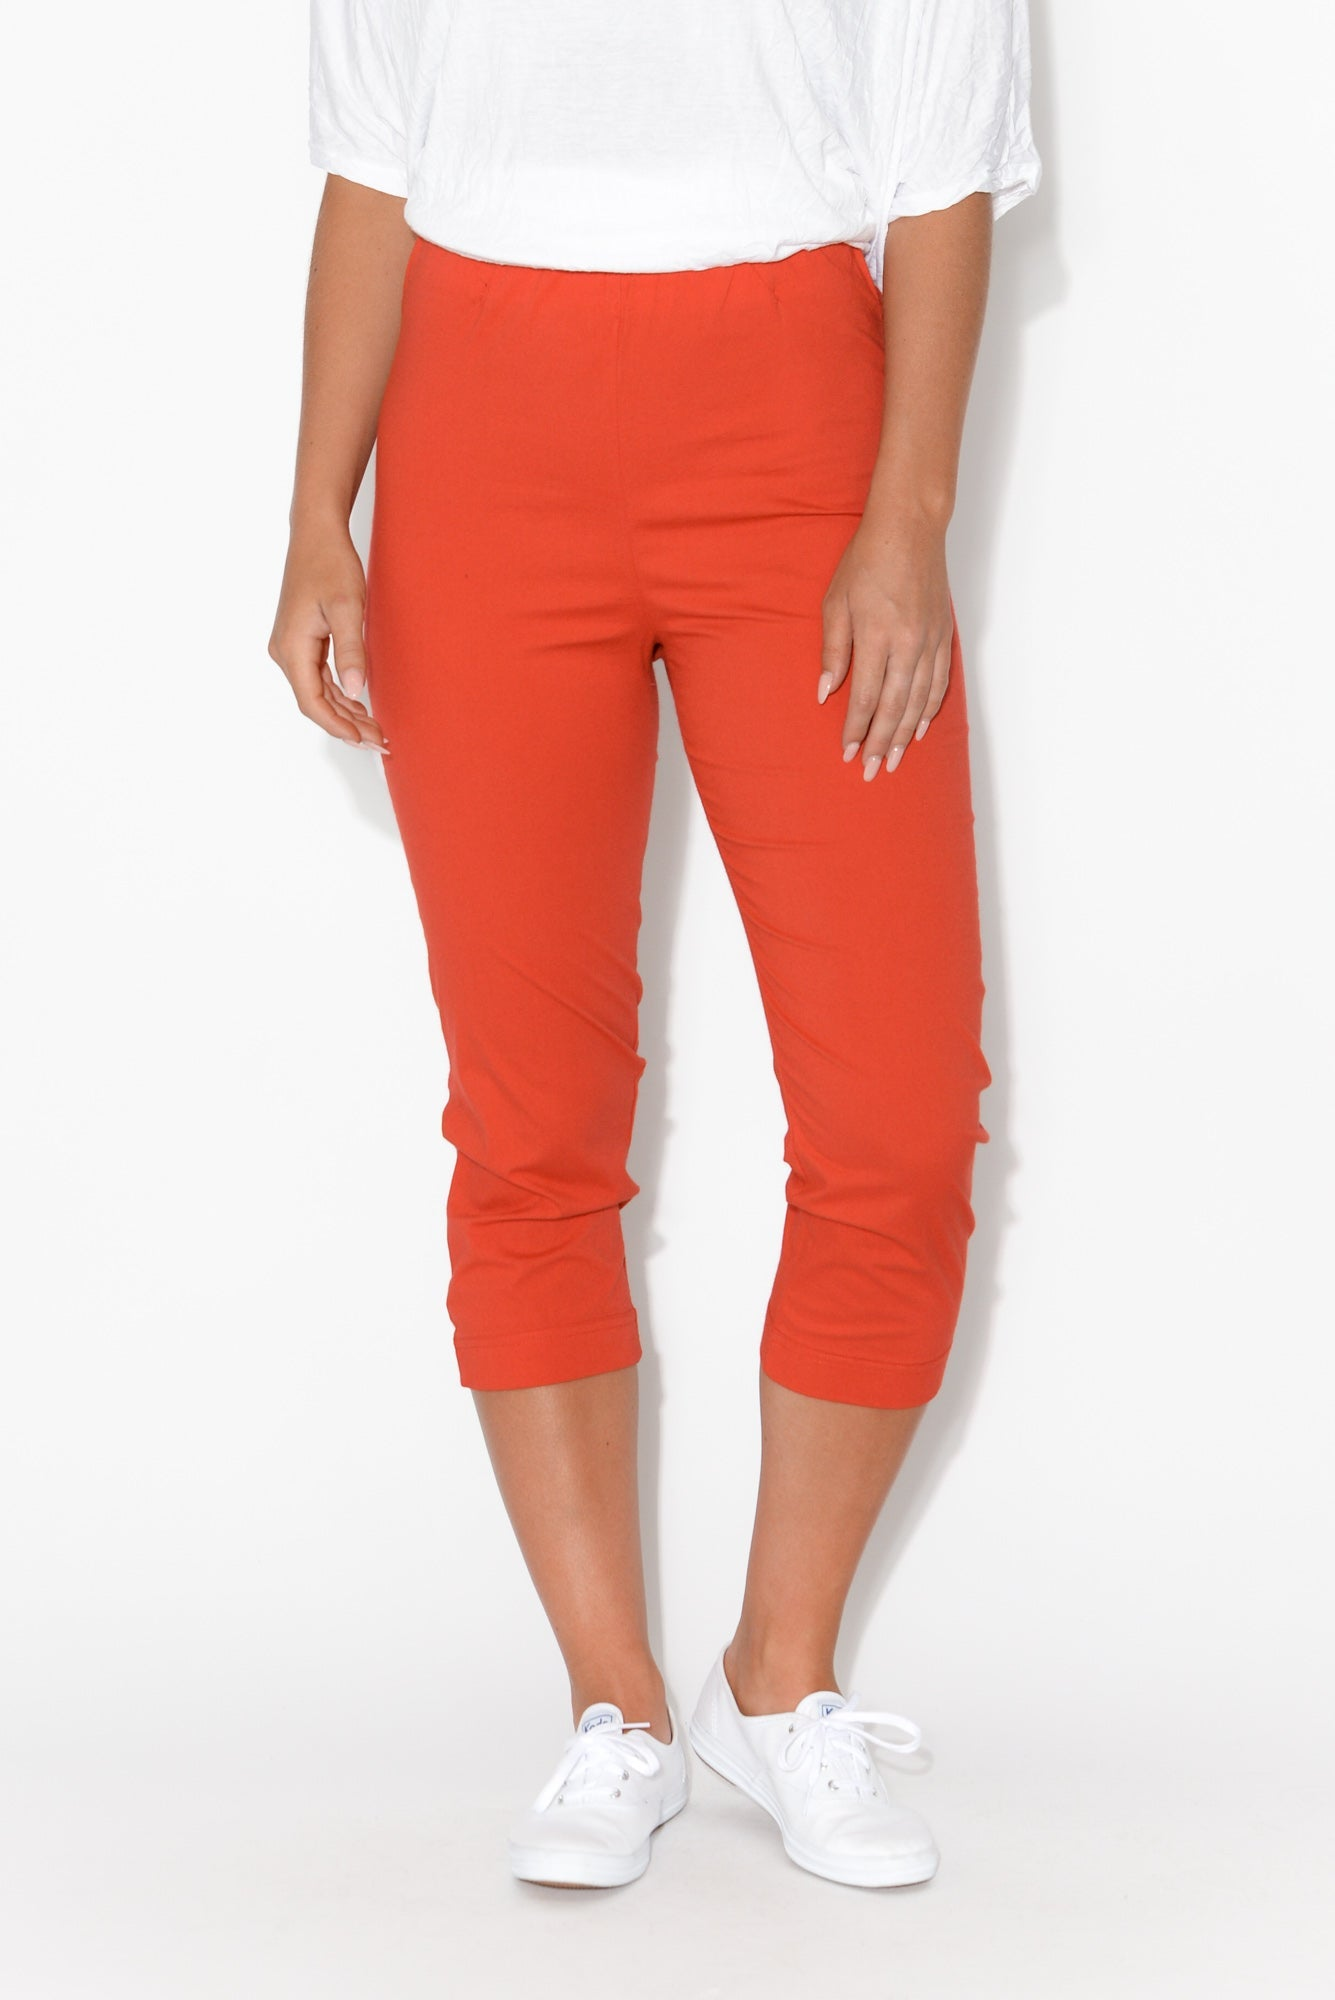 Darcy Red Cotton Capri Pant